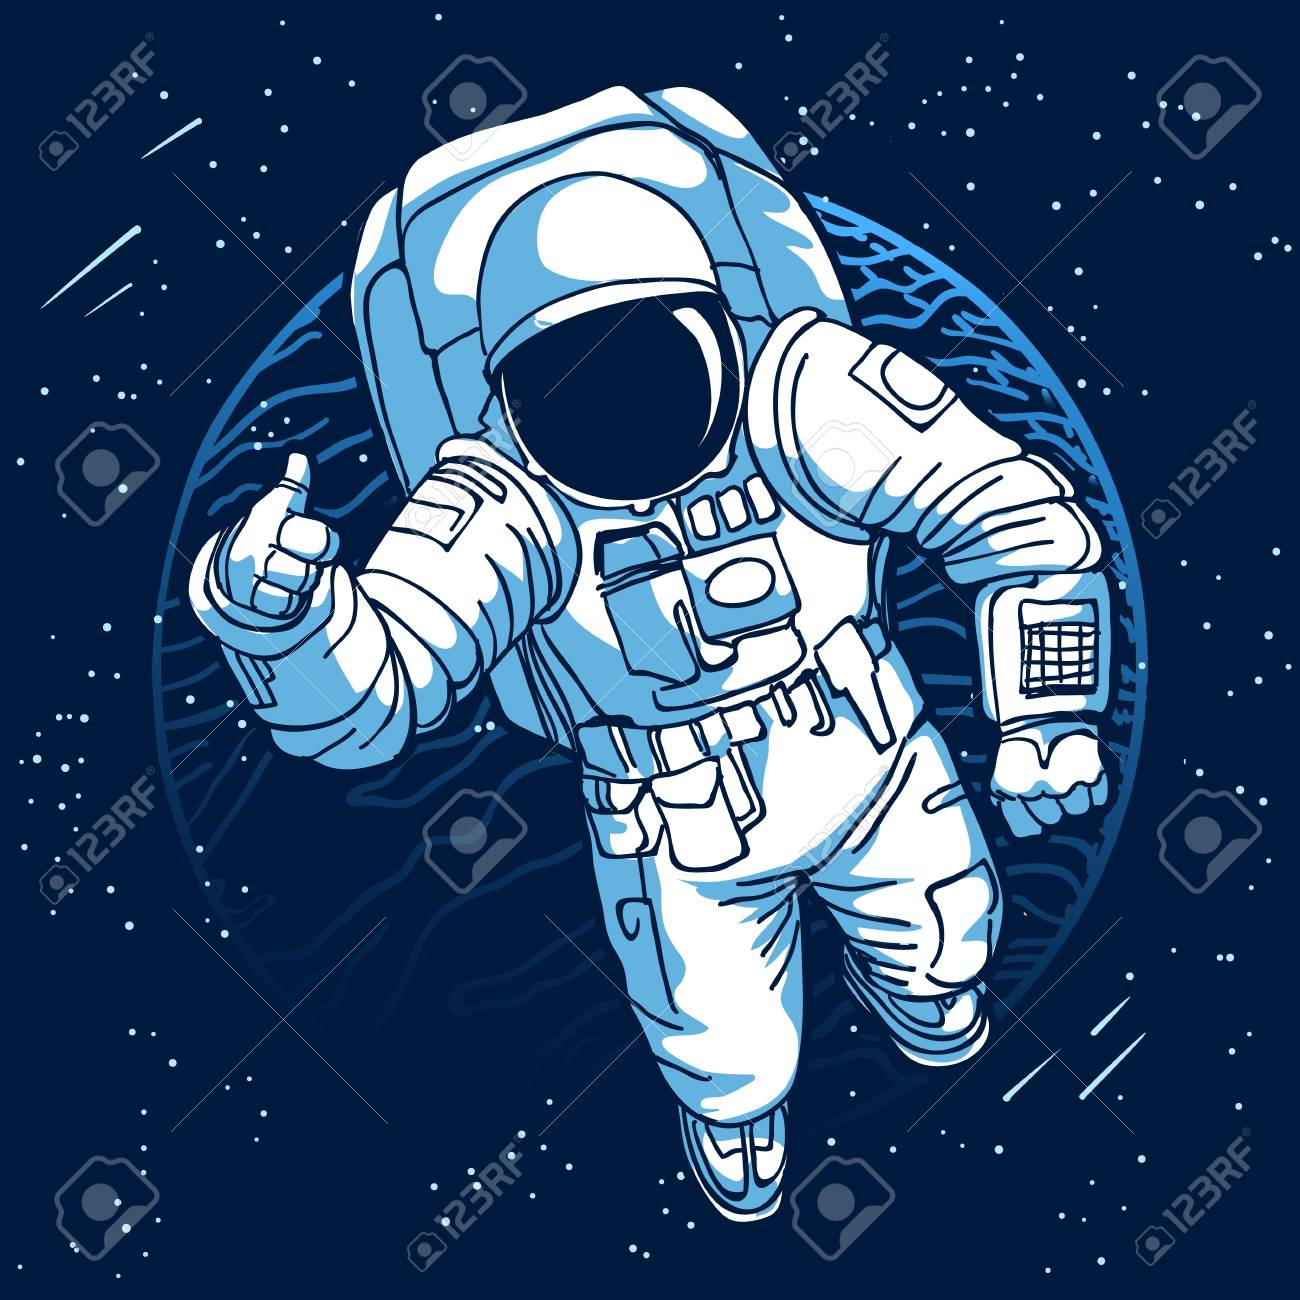 Astronaut Spaceman In Space On Moon Or Earth Planet Background 1300x1300